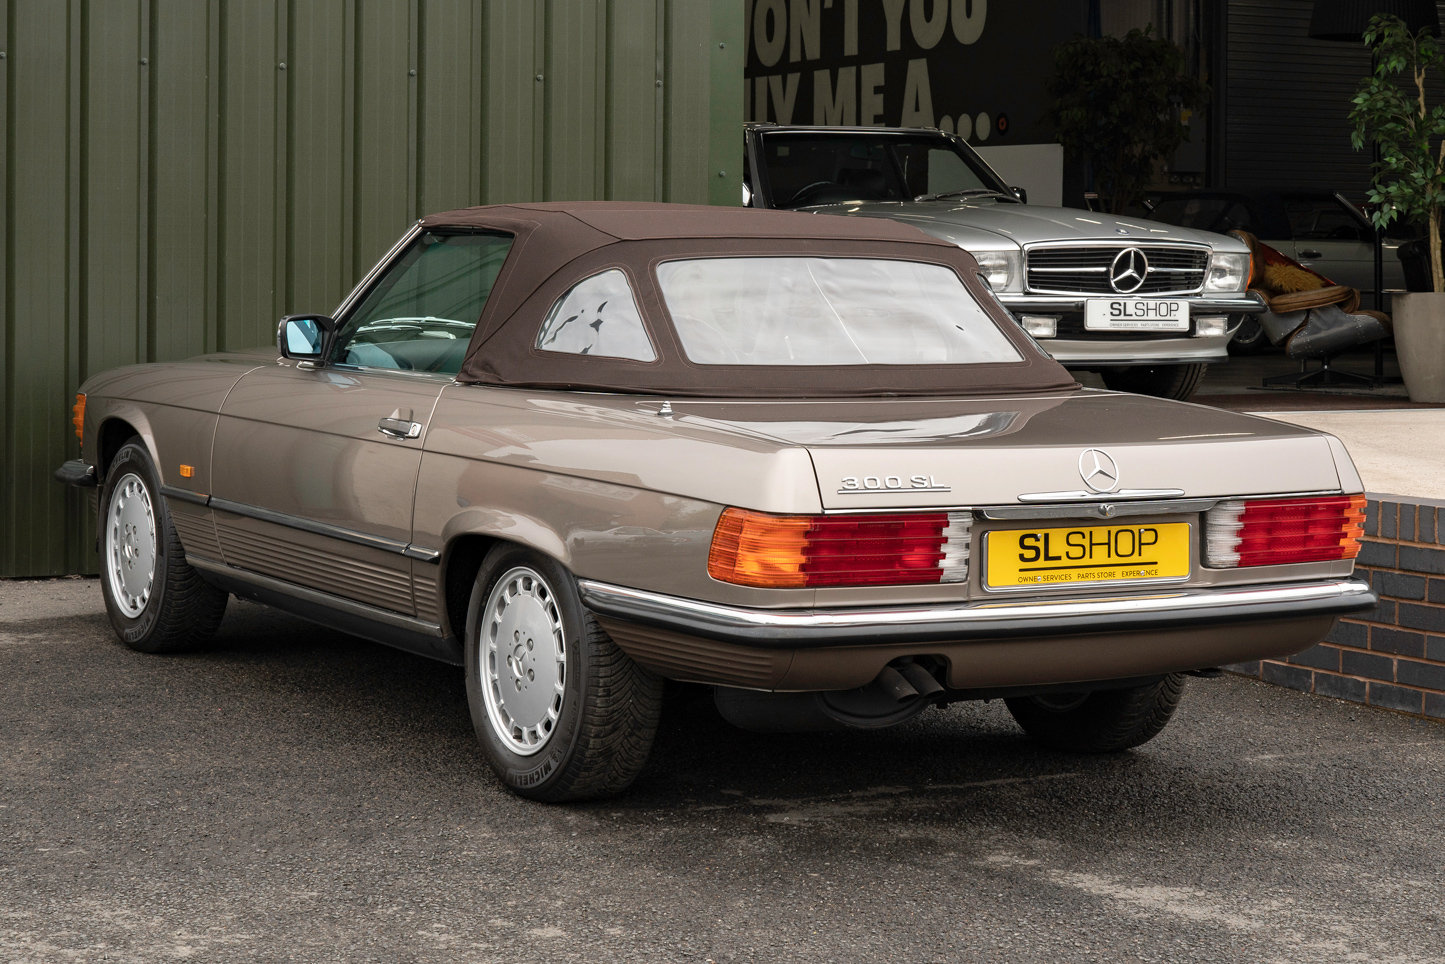 1987 Mercedes-Benz R107 300SL Impala Brown #2121 For Sale (picture 3 of 6)